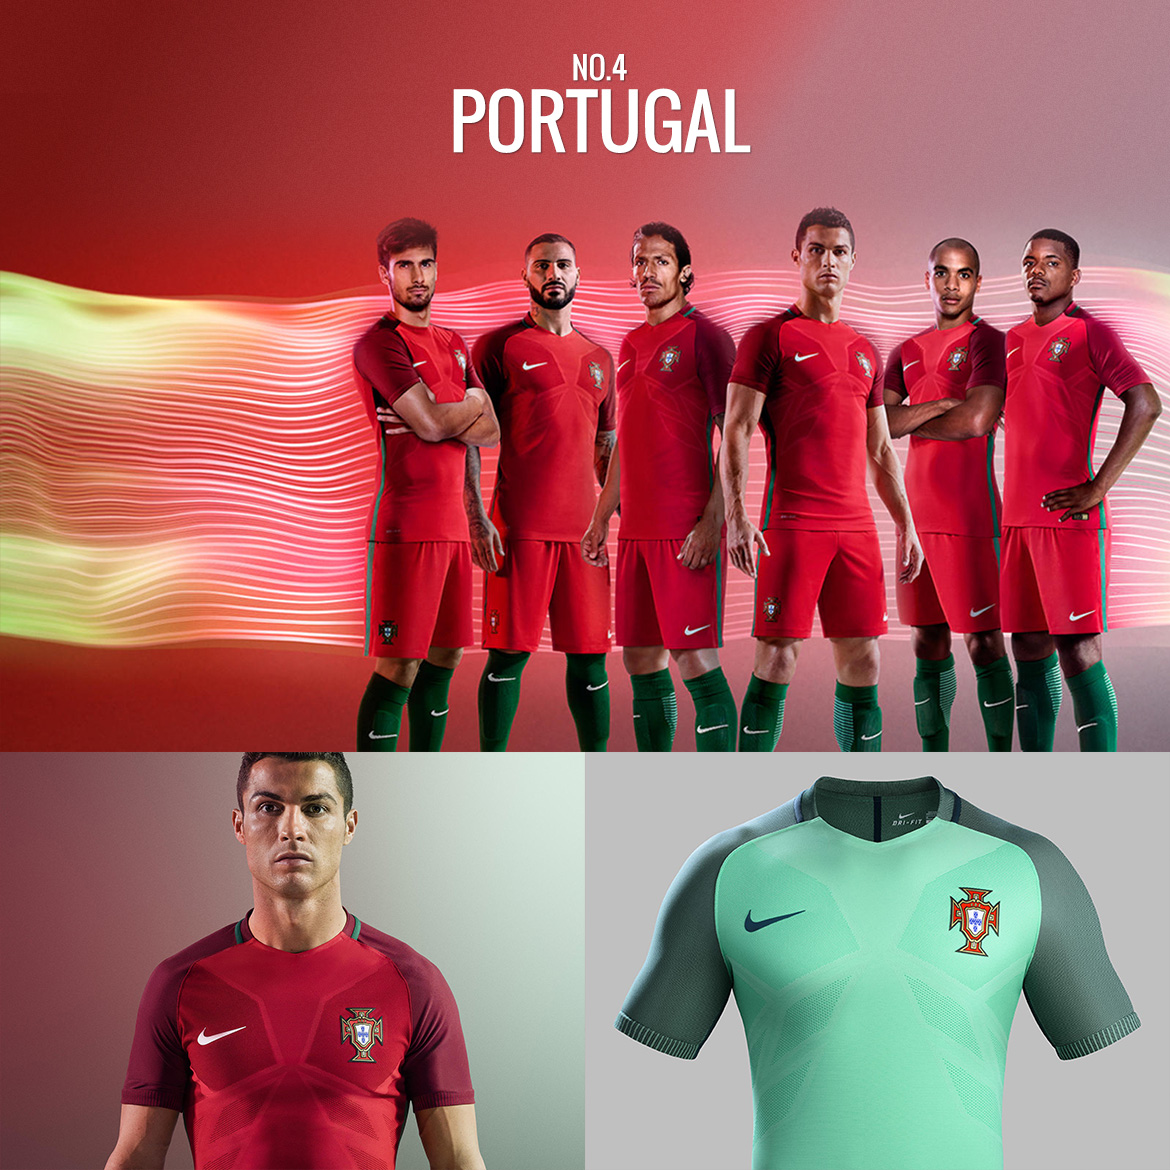 UEFA Euro 2016 - Portugal - Football Kit Design